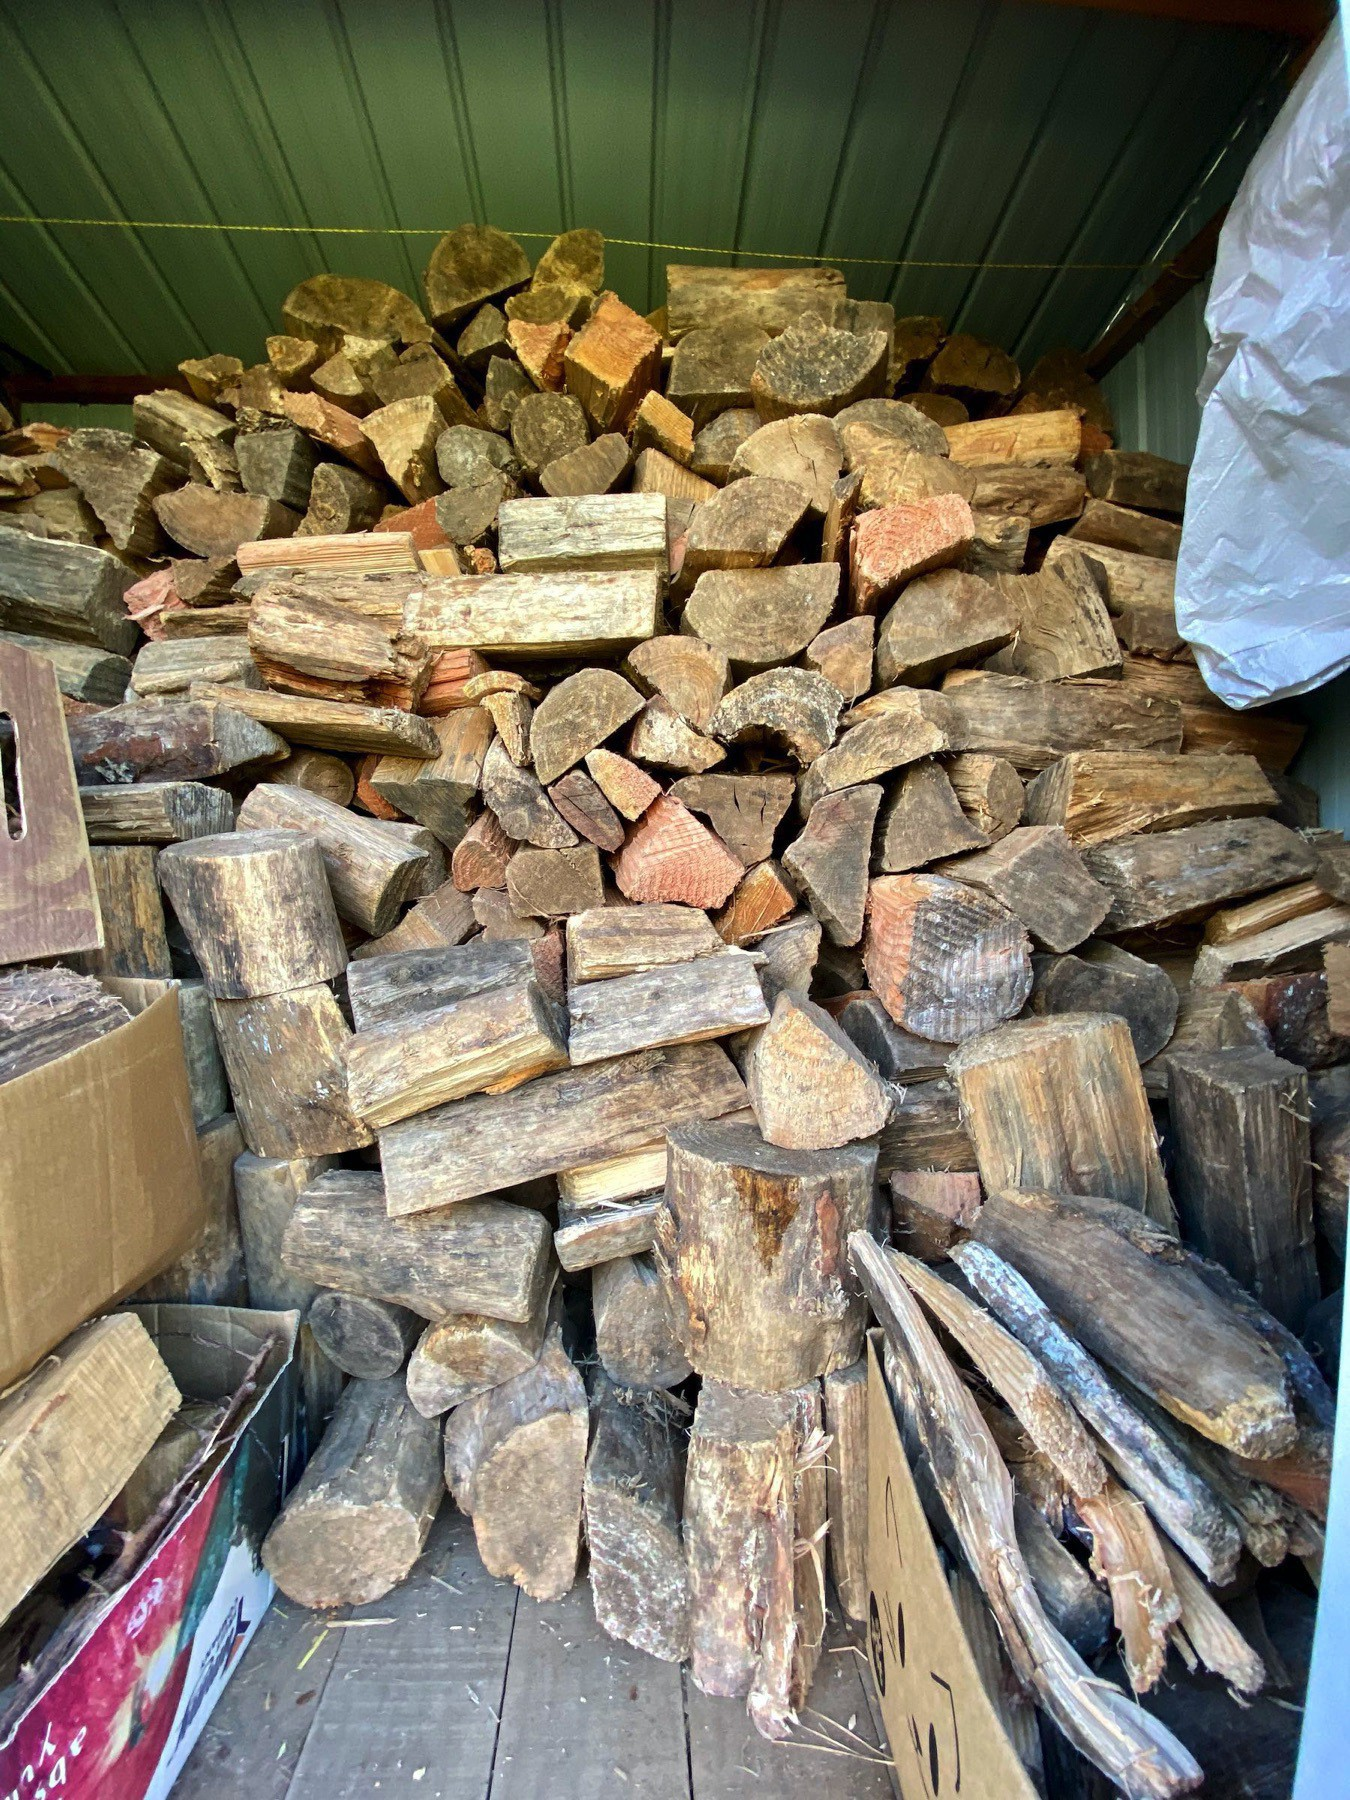 A load of stacked firewood in a shed.